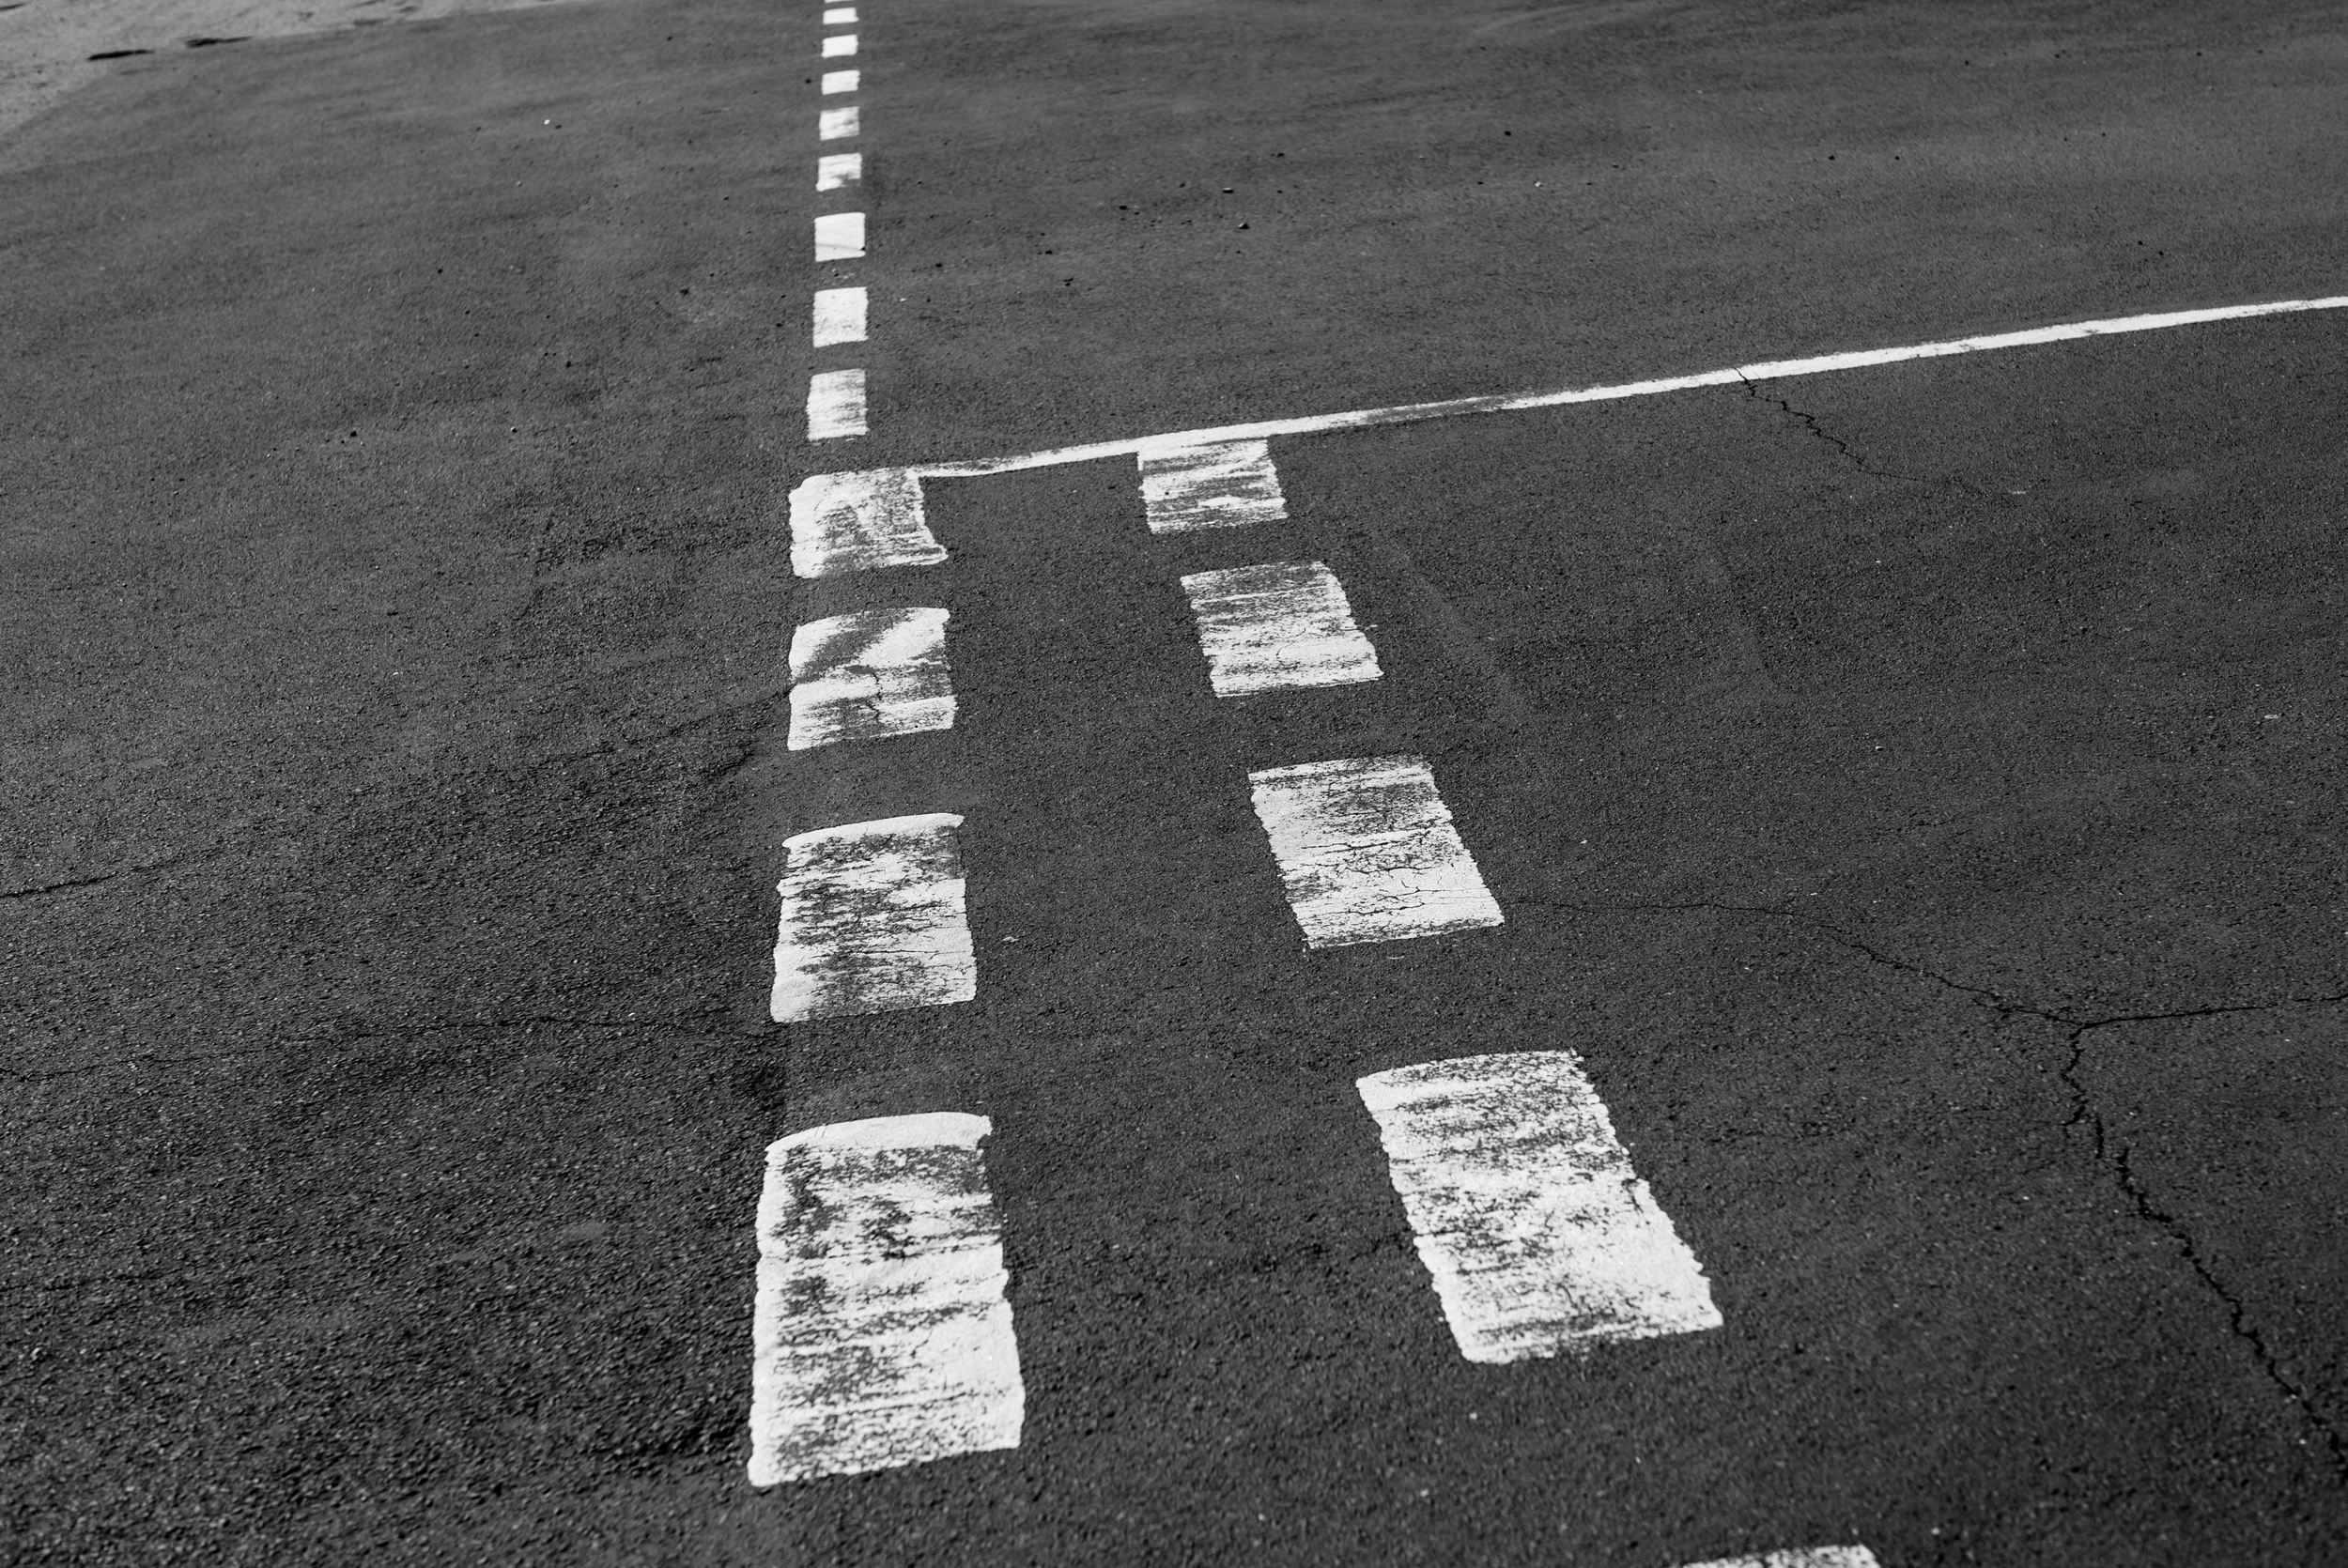 Road Markings -Leica MM with Leica 50mm Noctilux f/0.95